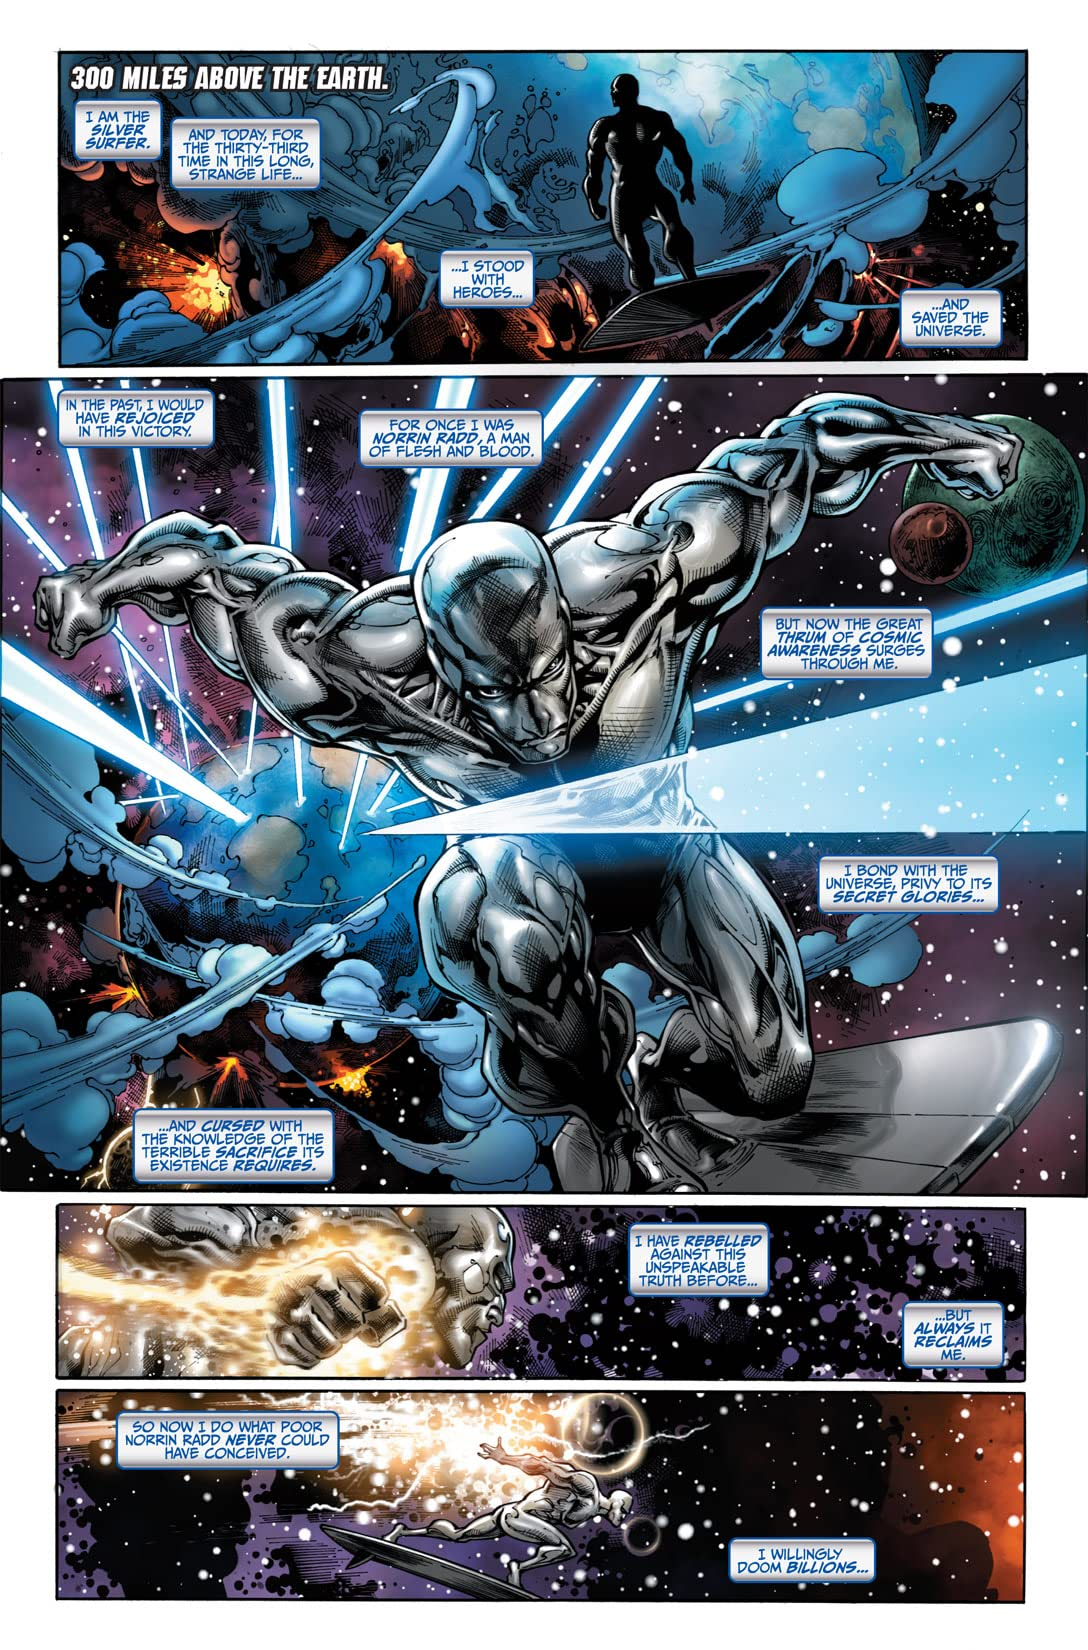 Silver Surfer (2011) #1 (of 5)